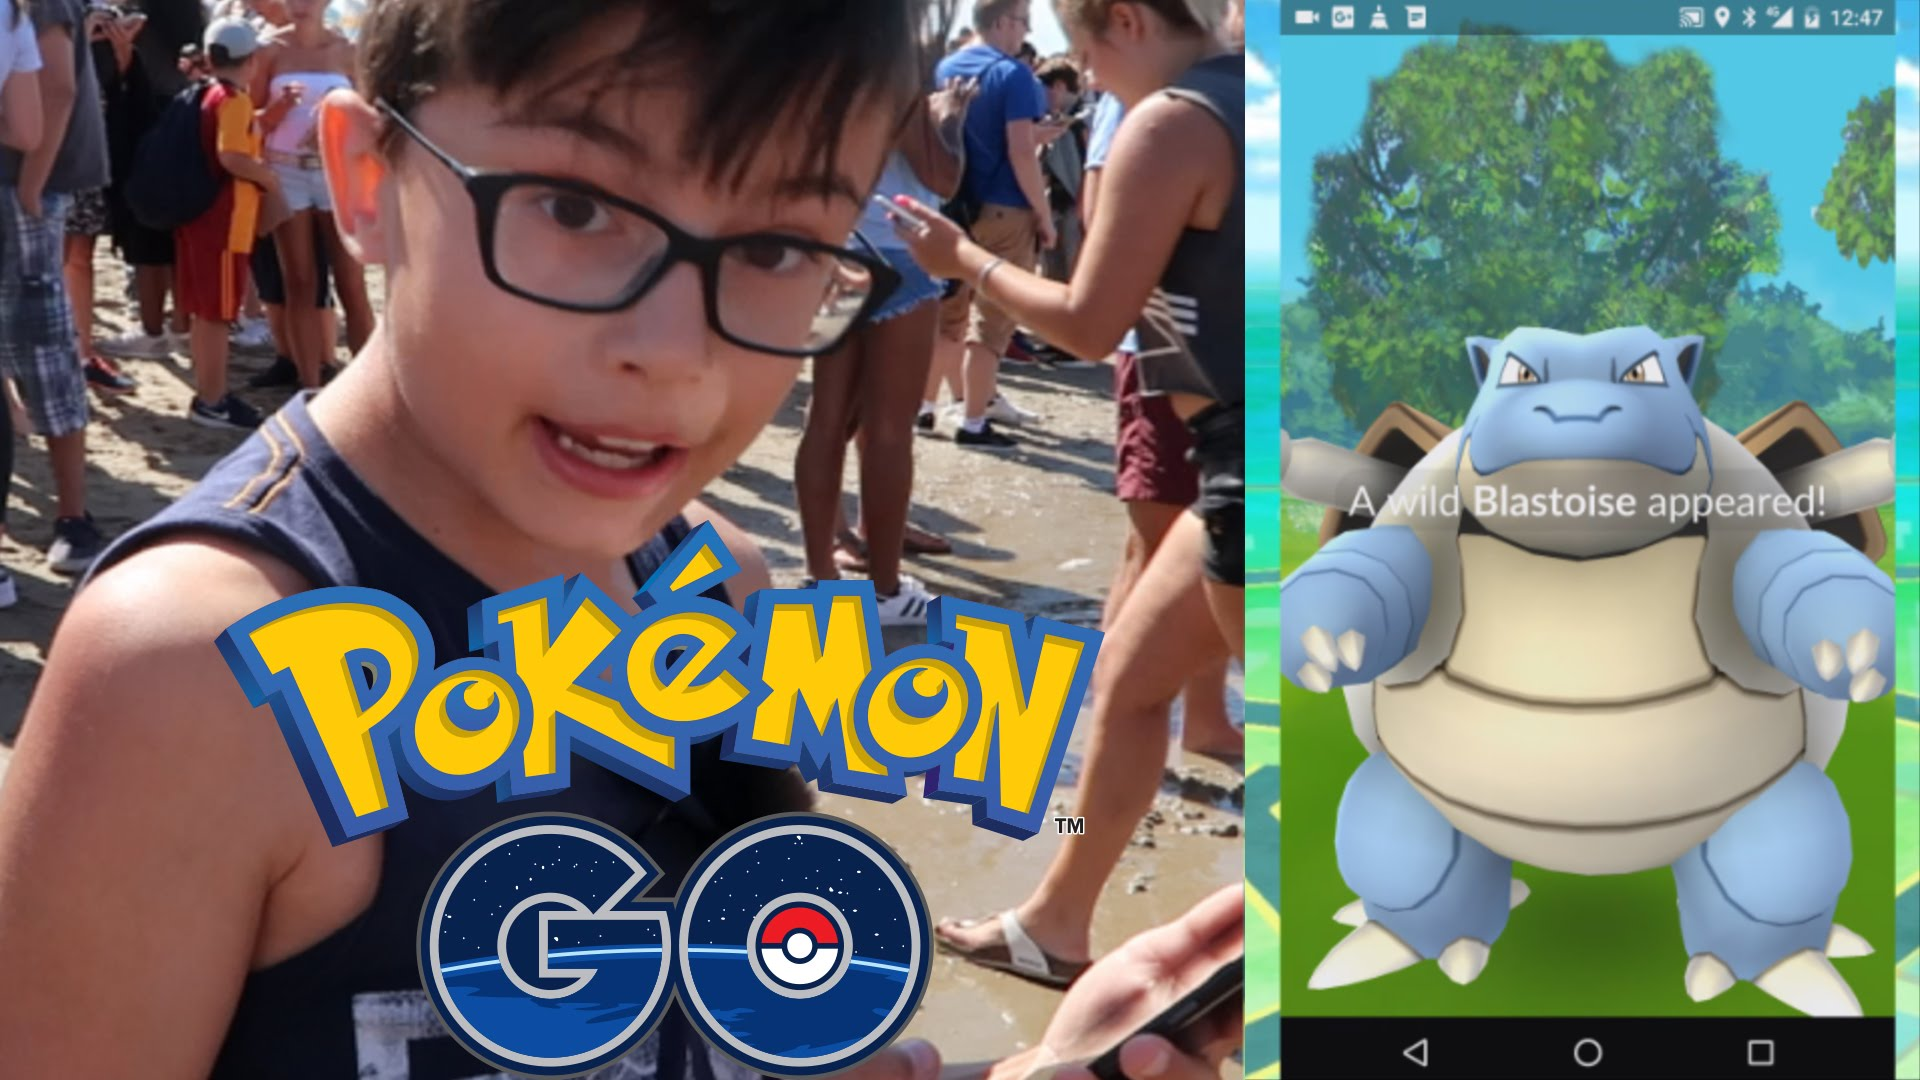 Pokemon Go in Kijkduin door Clonny Games! 2